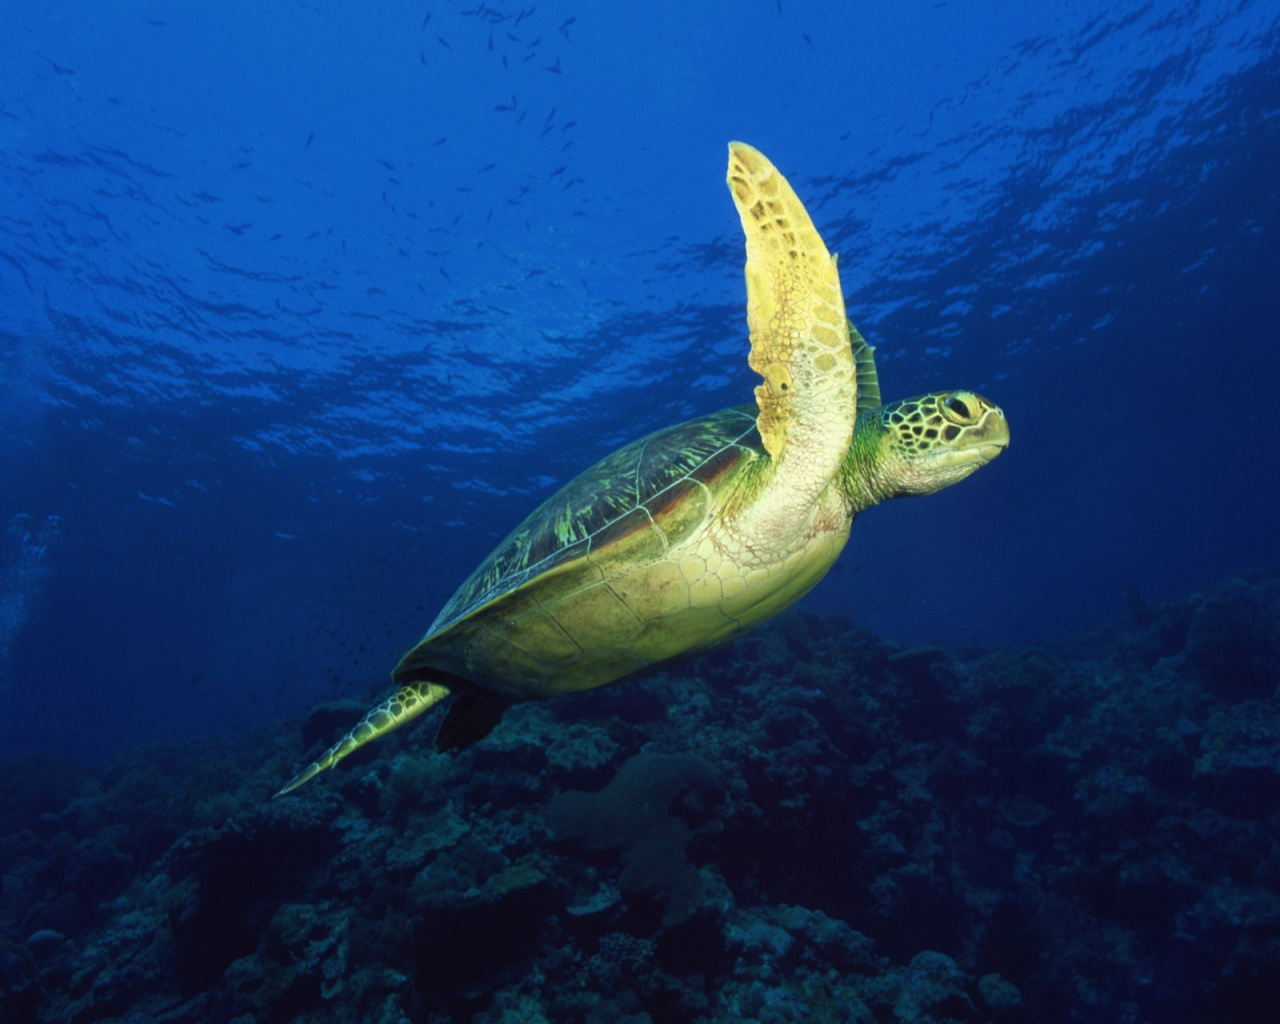 1280x1024 Sea turtle desktop wallpapers and stock photos